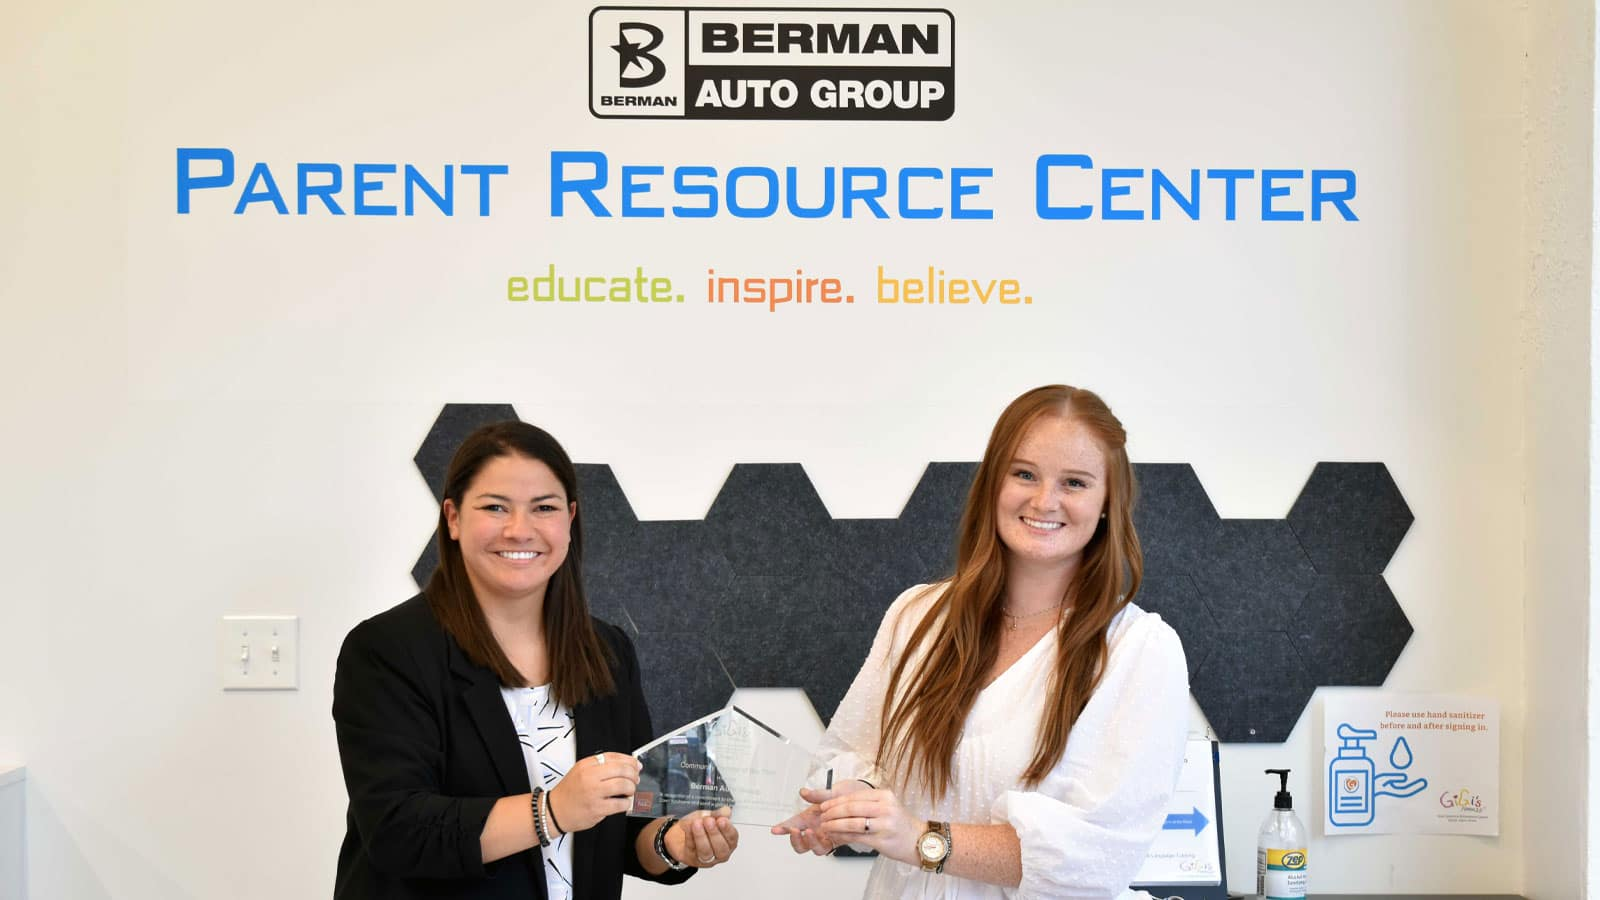 Berman Auto Group's Leah Garcia met with the GiGi's team to receive the award